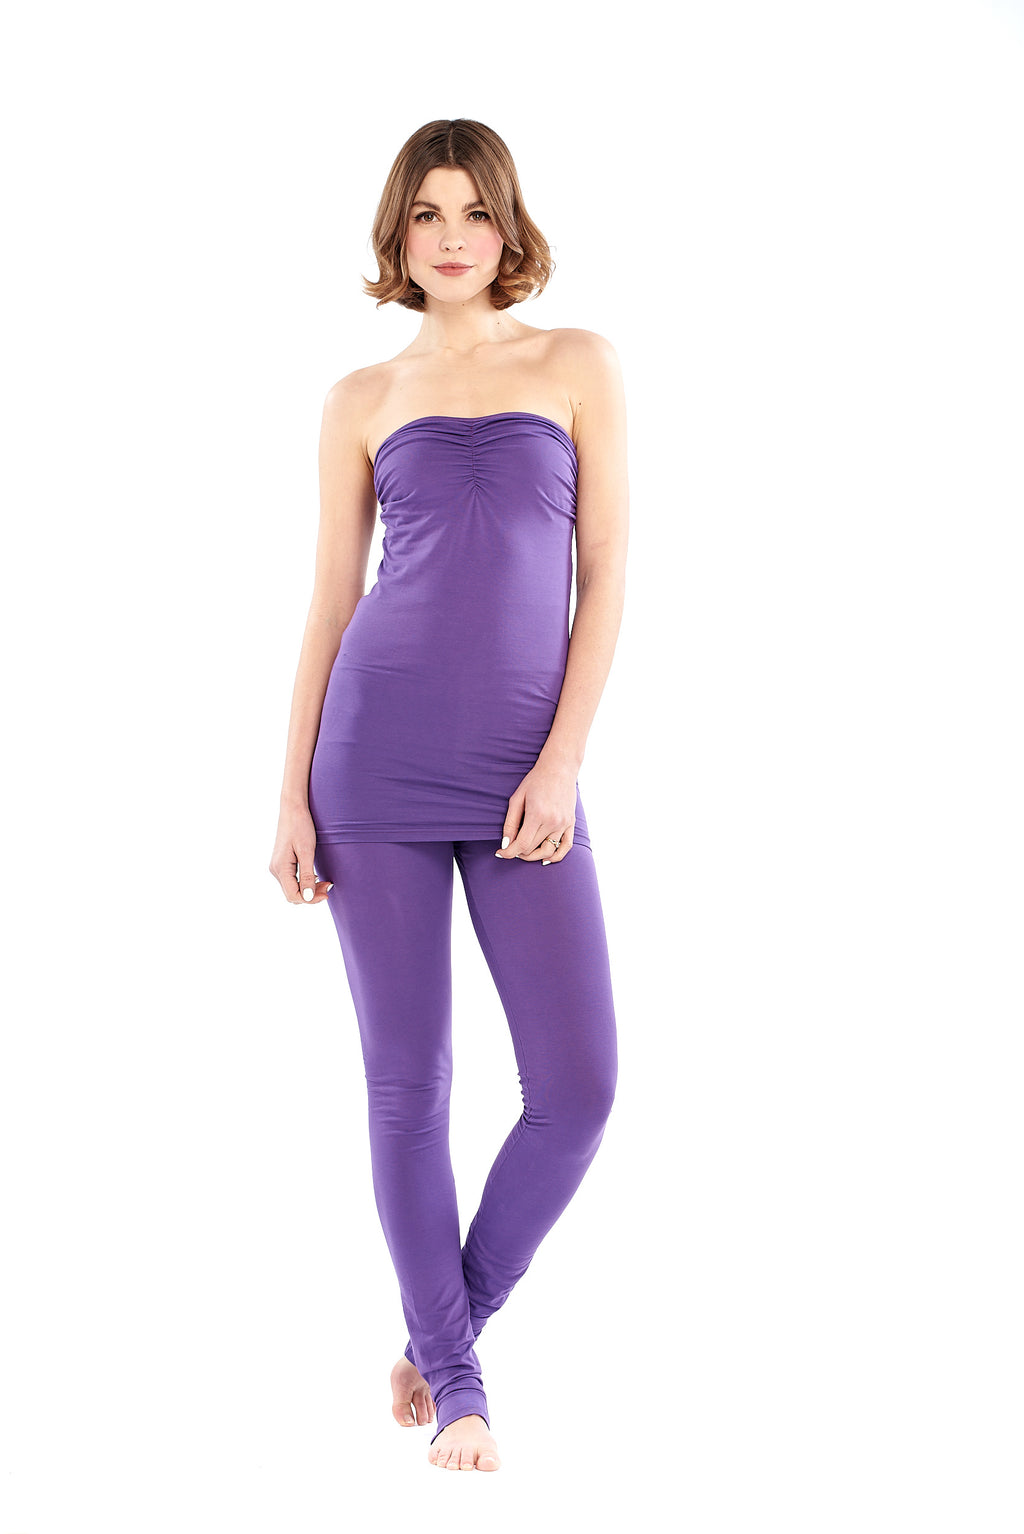 Organic Bamboo Multiway Tube Top Purple - MUDRA